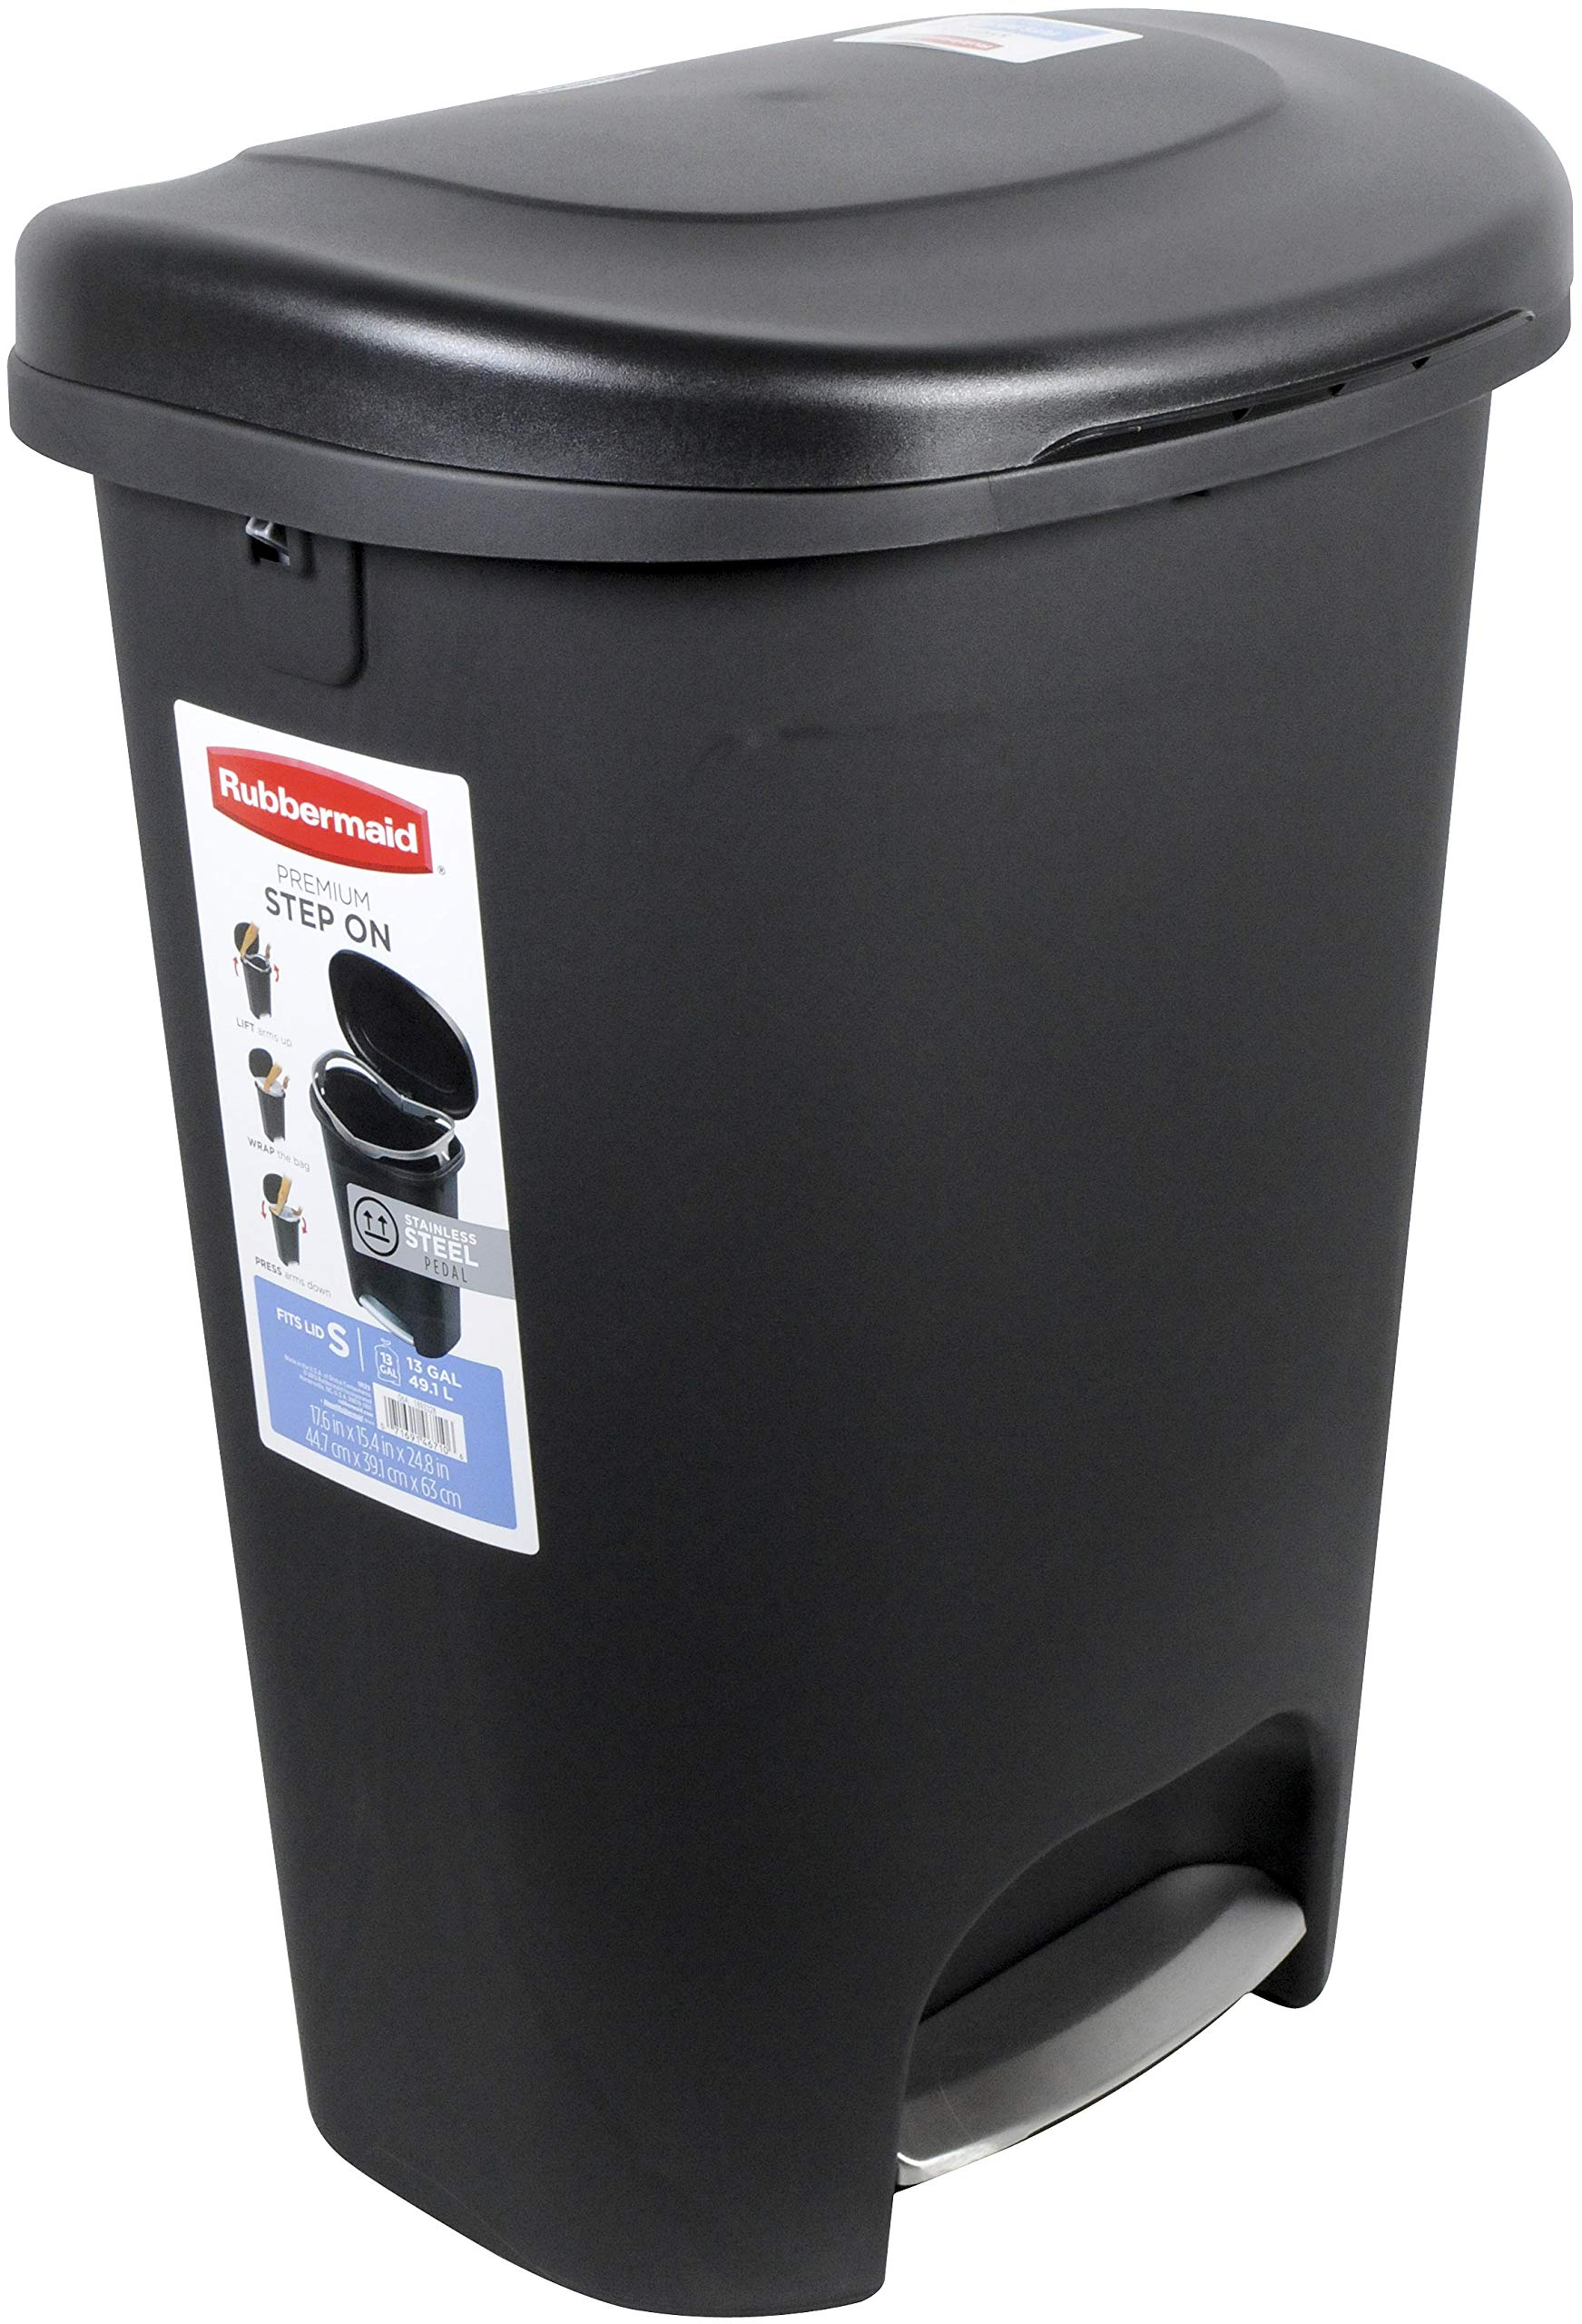 Rubbermaid Step-On Lid Trash Can for Home, Kitchen, and Bathroom Garbage, 13 Gallon, Black by Rubbermaid